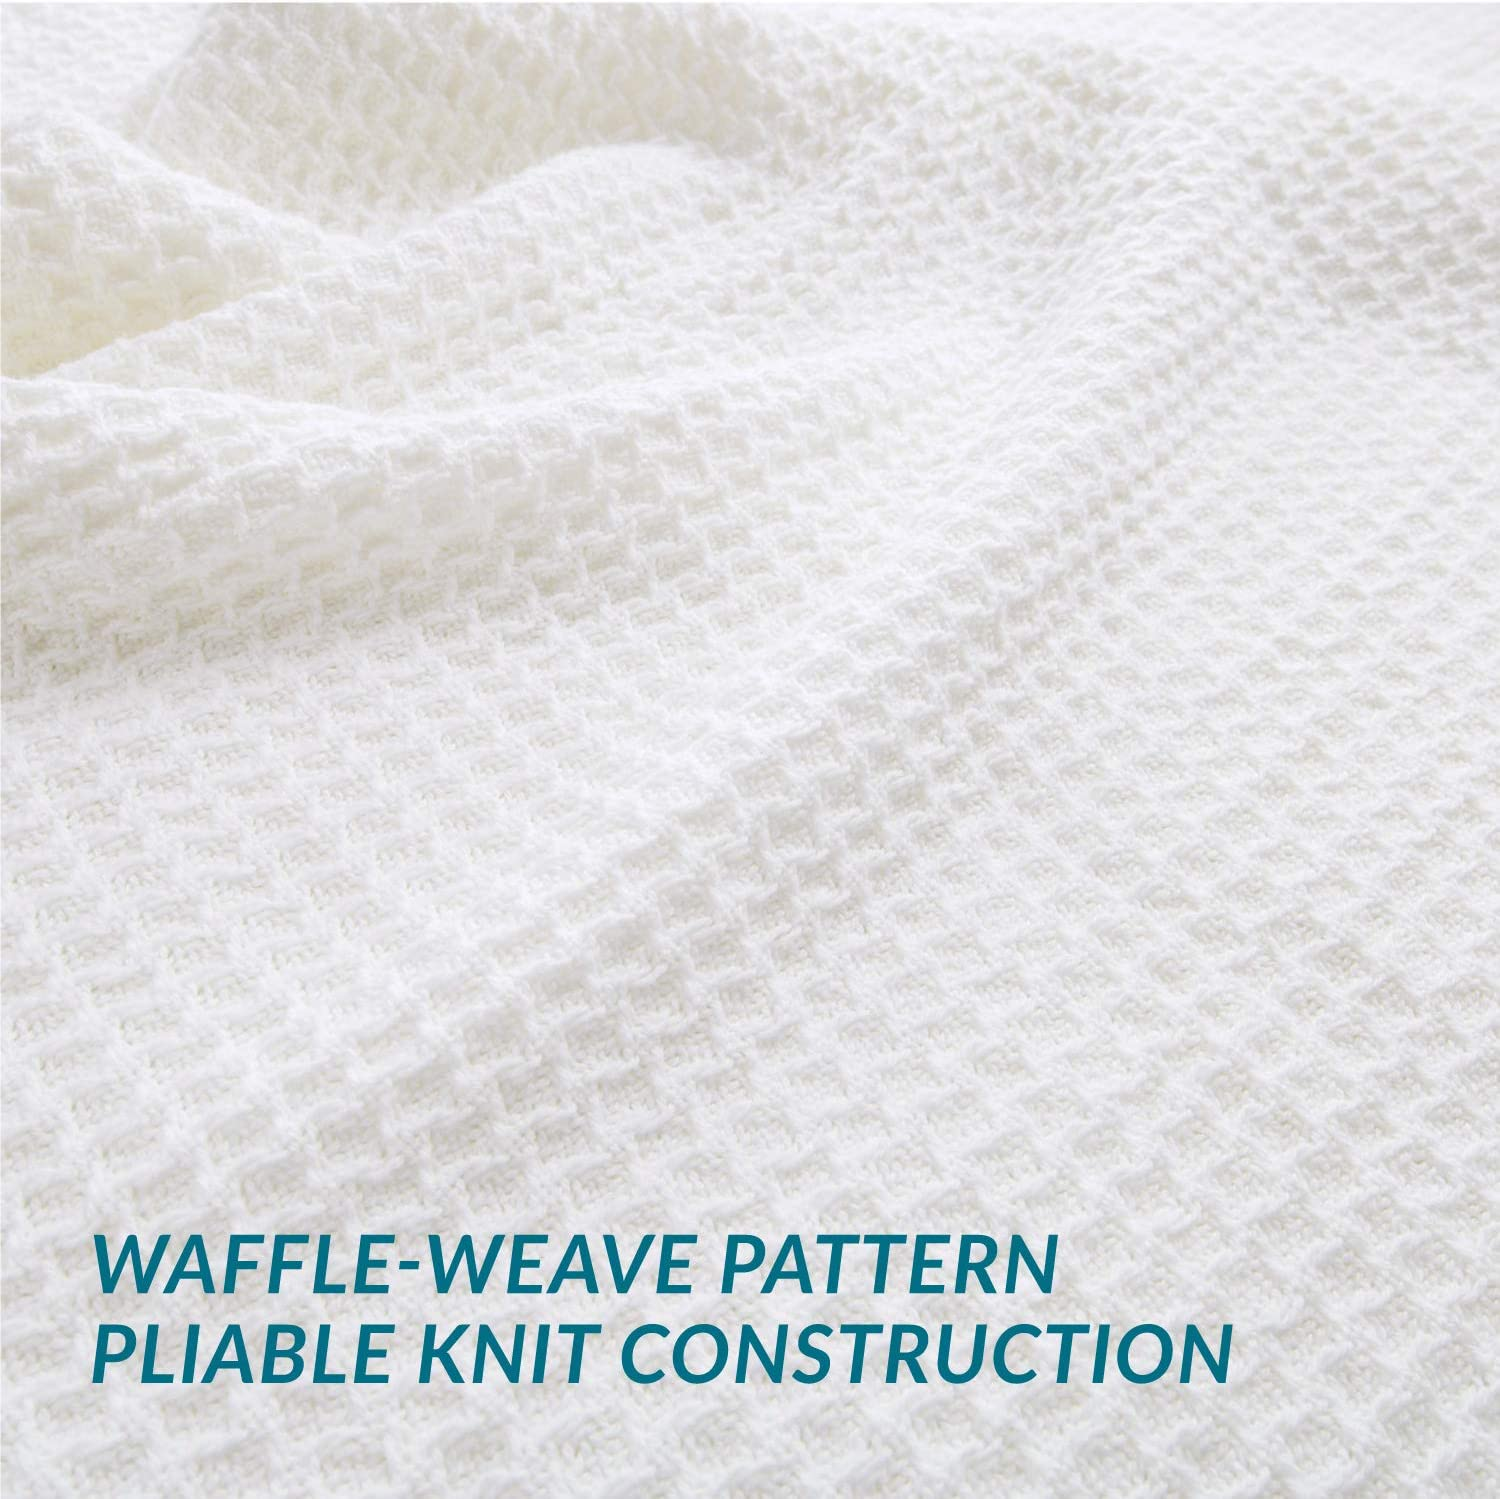 Bedsure 100% Cotton Thermal Blanket - 405GSM Premium Breathable Blanket in Waffle Weave for Home Decoration - Perfect for Layering Any Bed for All-Season - Full/Queen Size (90 x 90 inches), White: Home & Kitchen